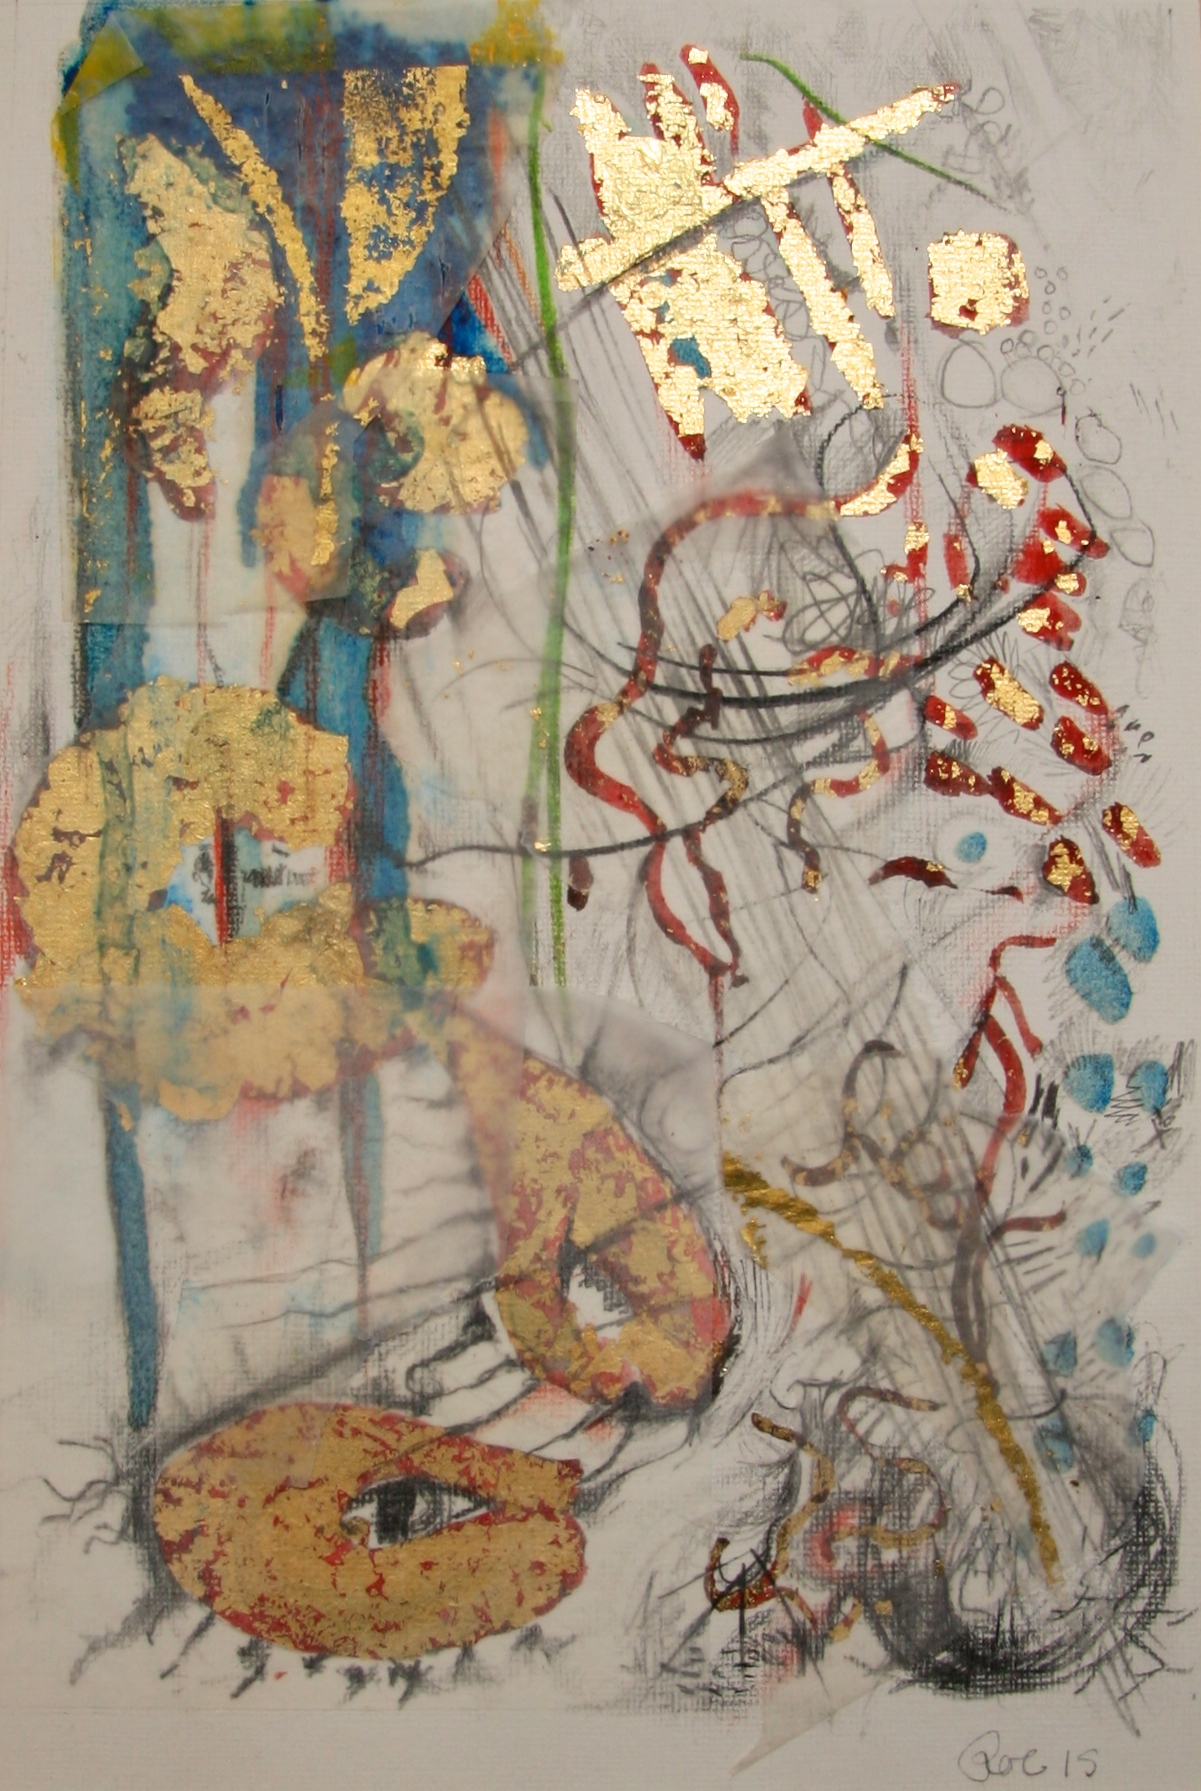 Gold and metal leaf, Tinted shellac and mixed media on paper. 210 x 297mm. 2015.